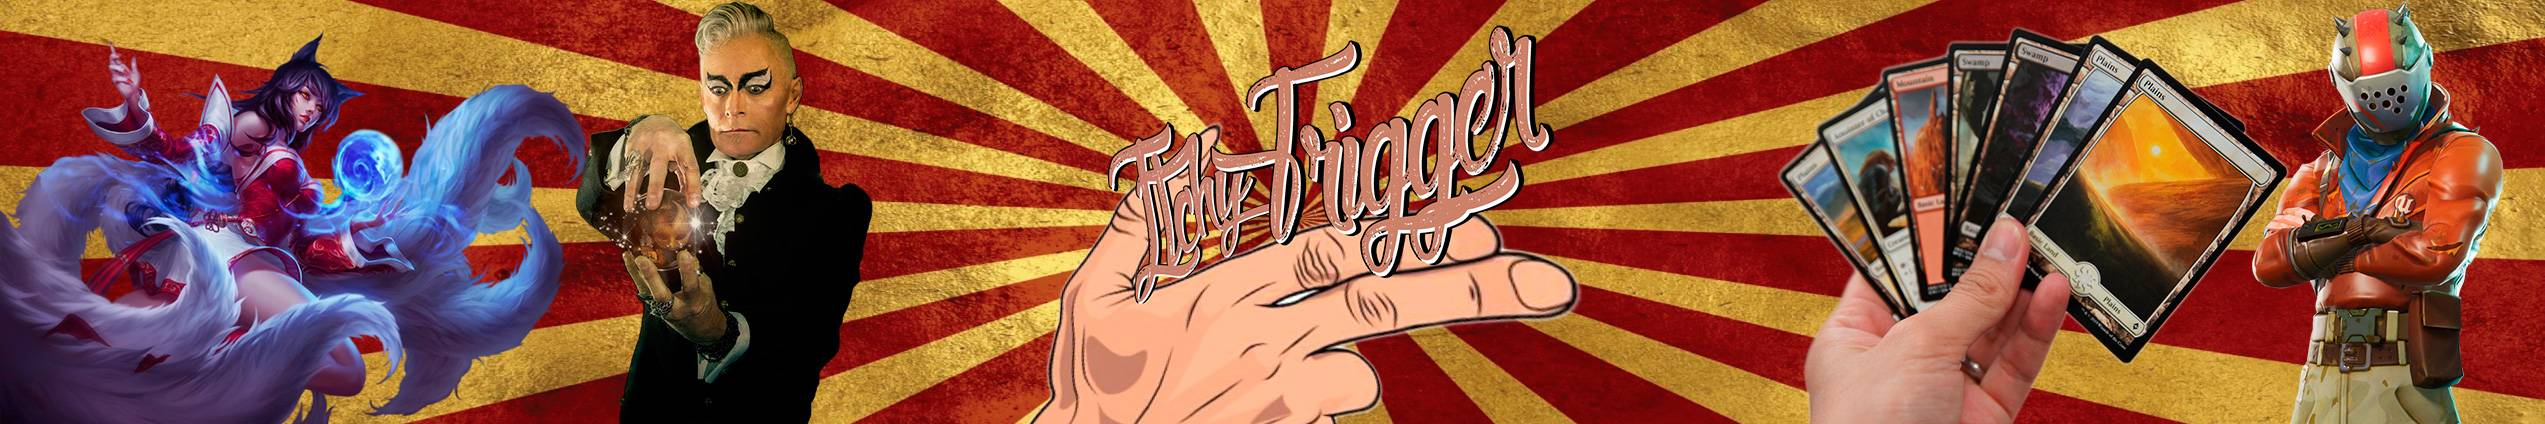 Itchy Trigger Finger is coming to Whangarei – Oct 1-3, 2018